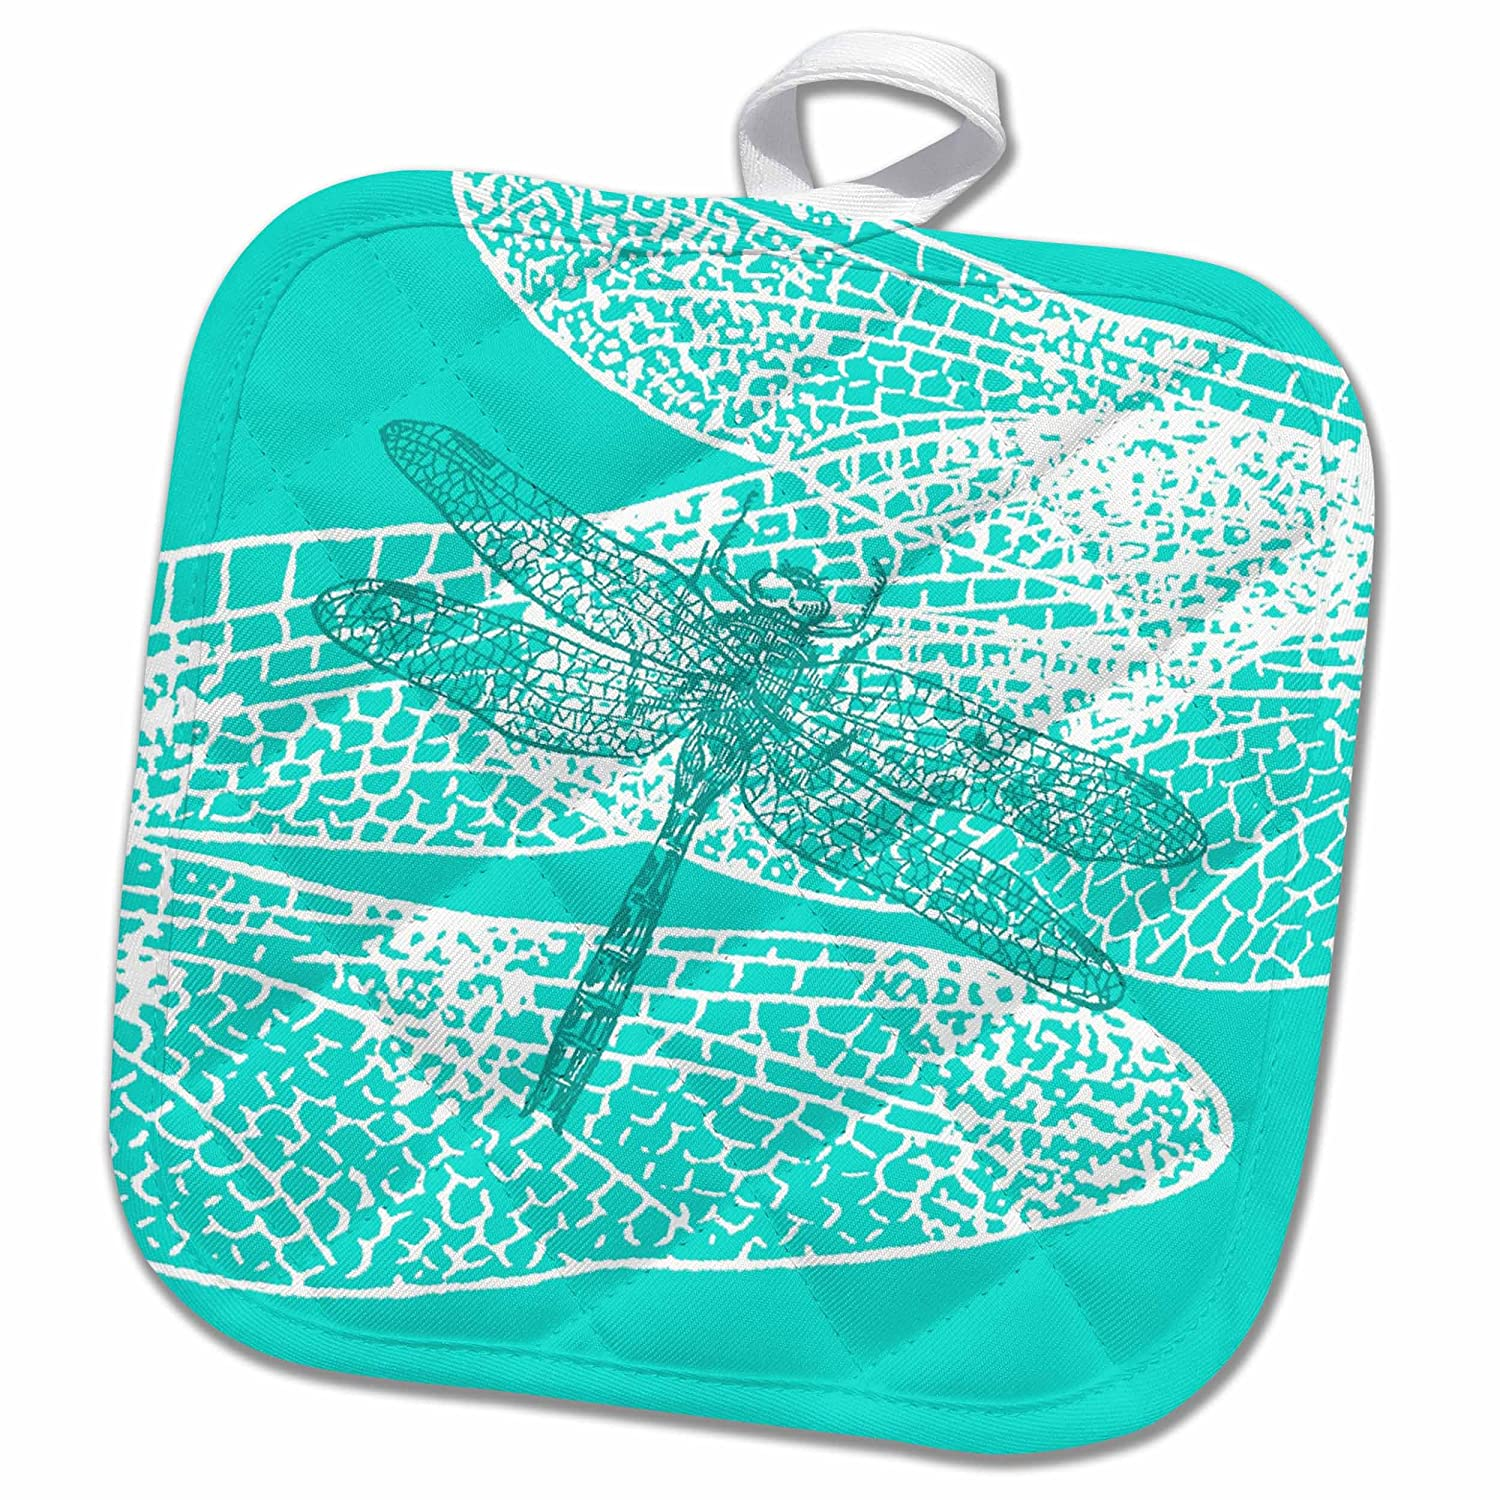 8 X 8 3d Rose Pretty Dragonfly Wing Design In Turquoise And Blue Pot Holder Home Kitchen Kitchen Dining